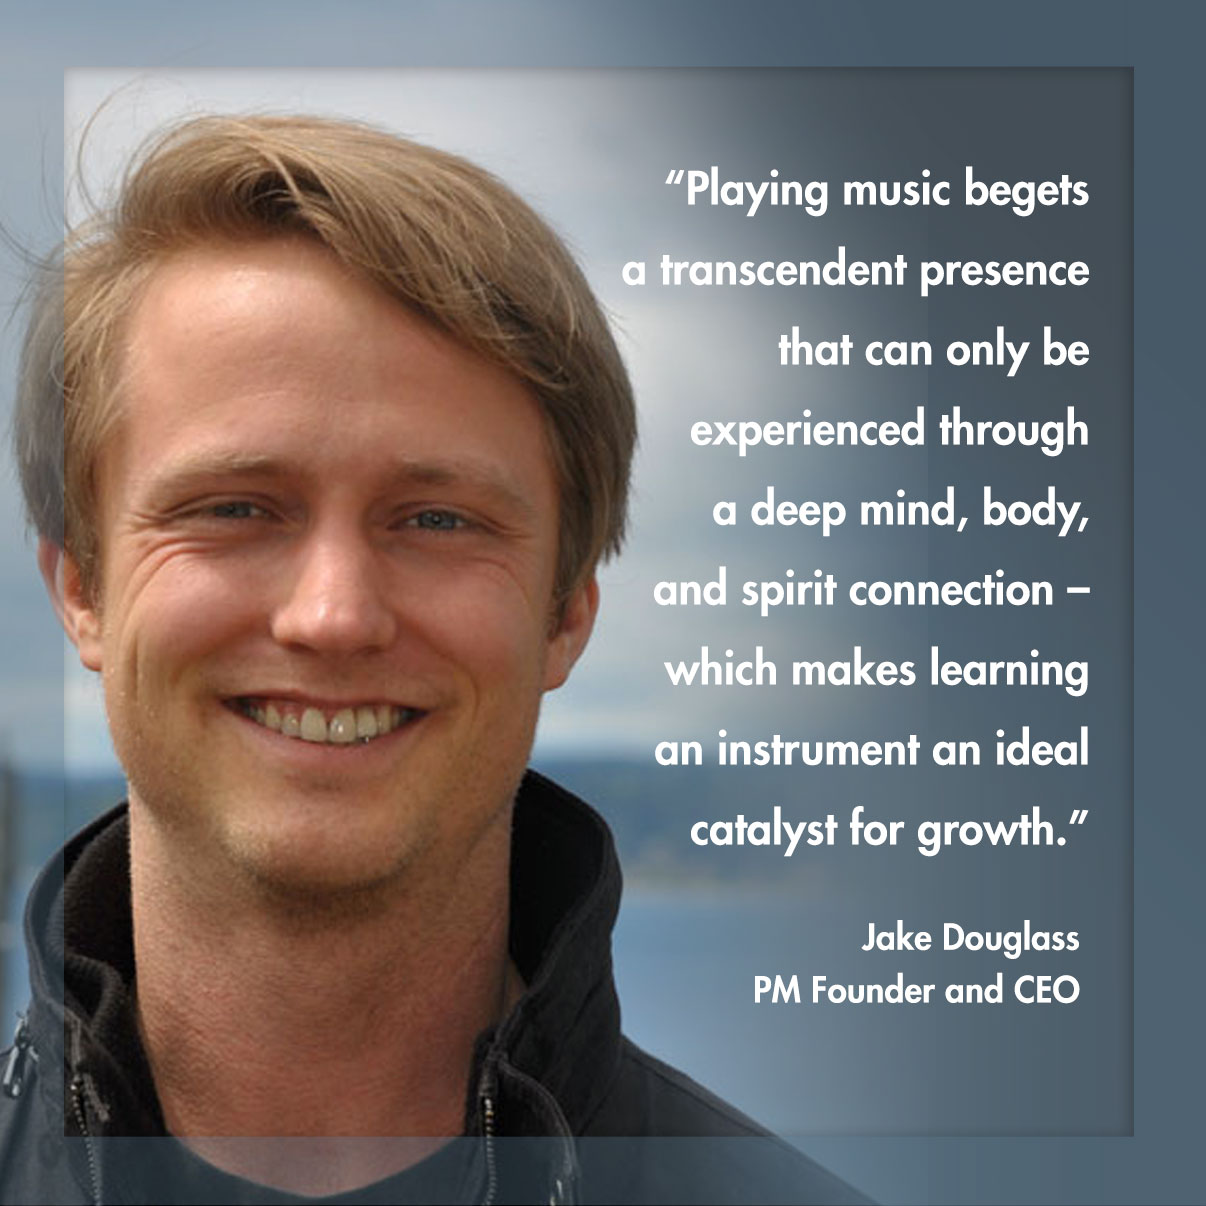 Jake Douglass - PM Founder and CEO